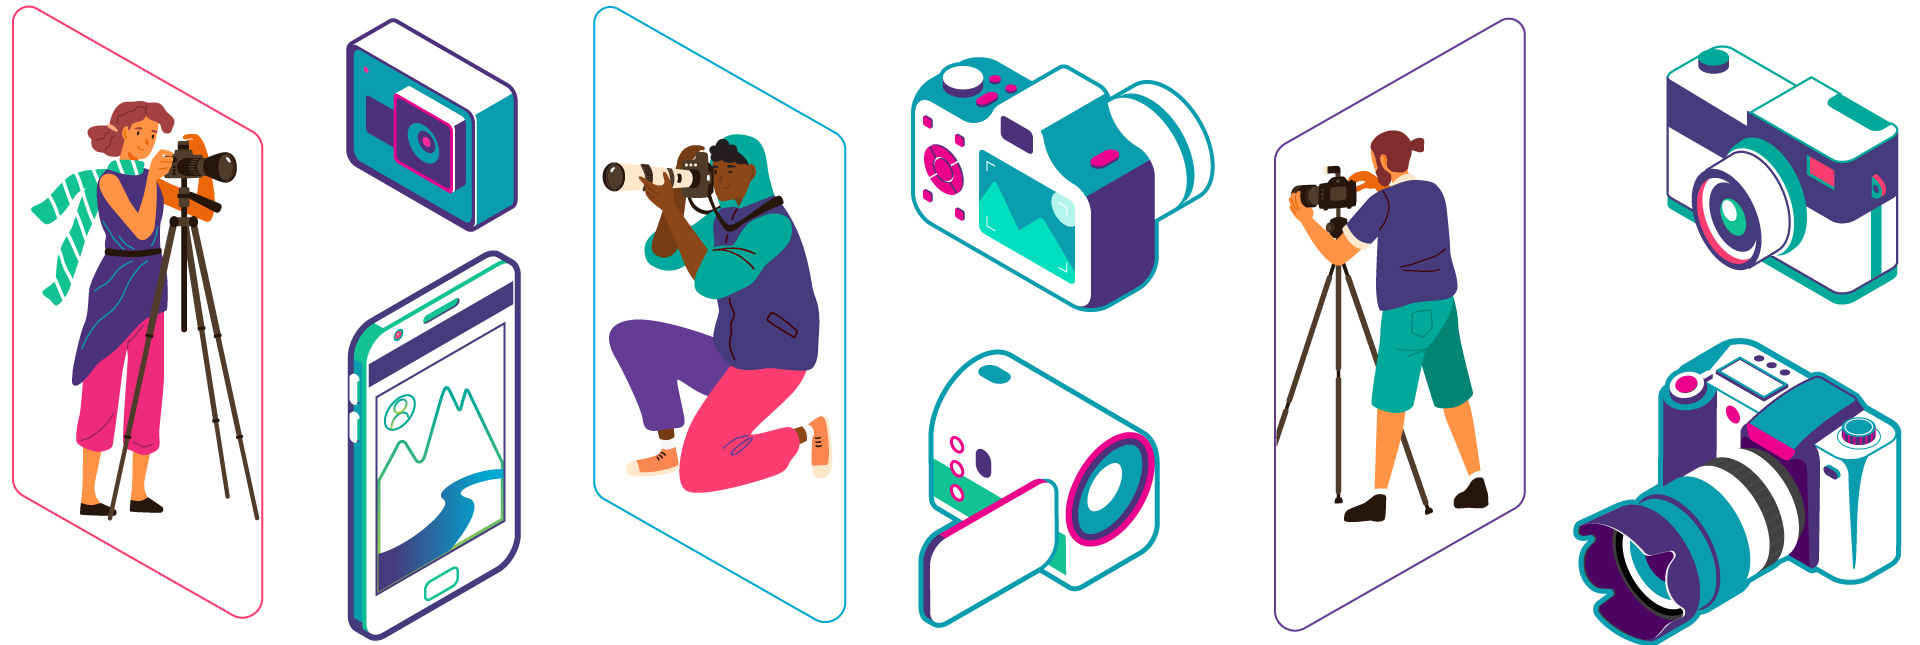 Collage of cameras and photographer illustrations